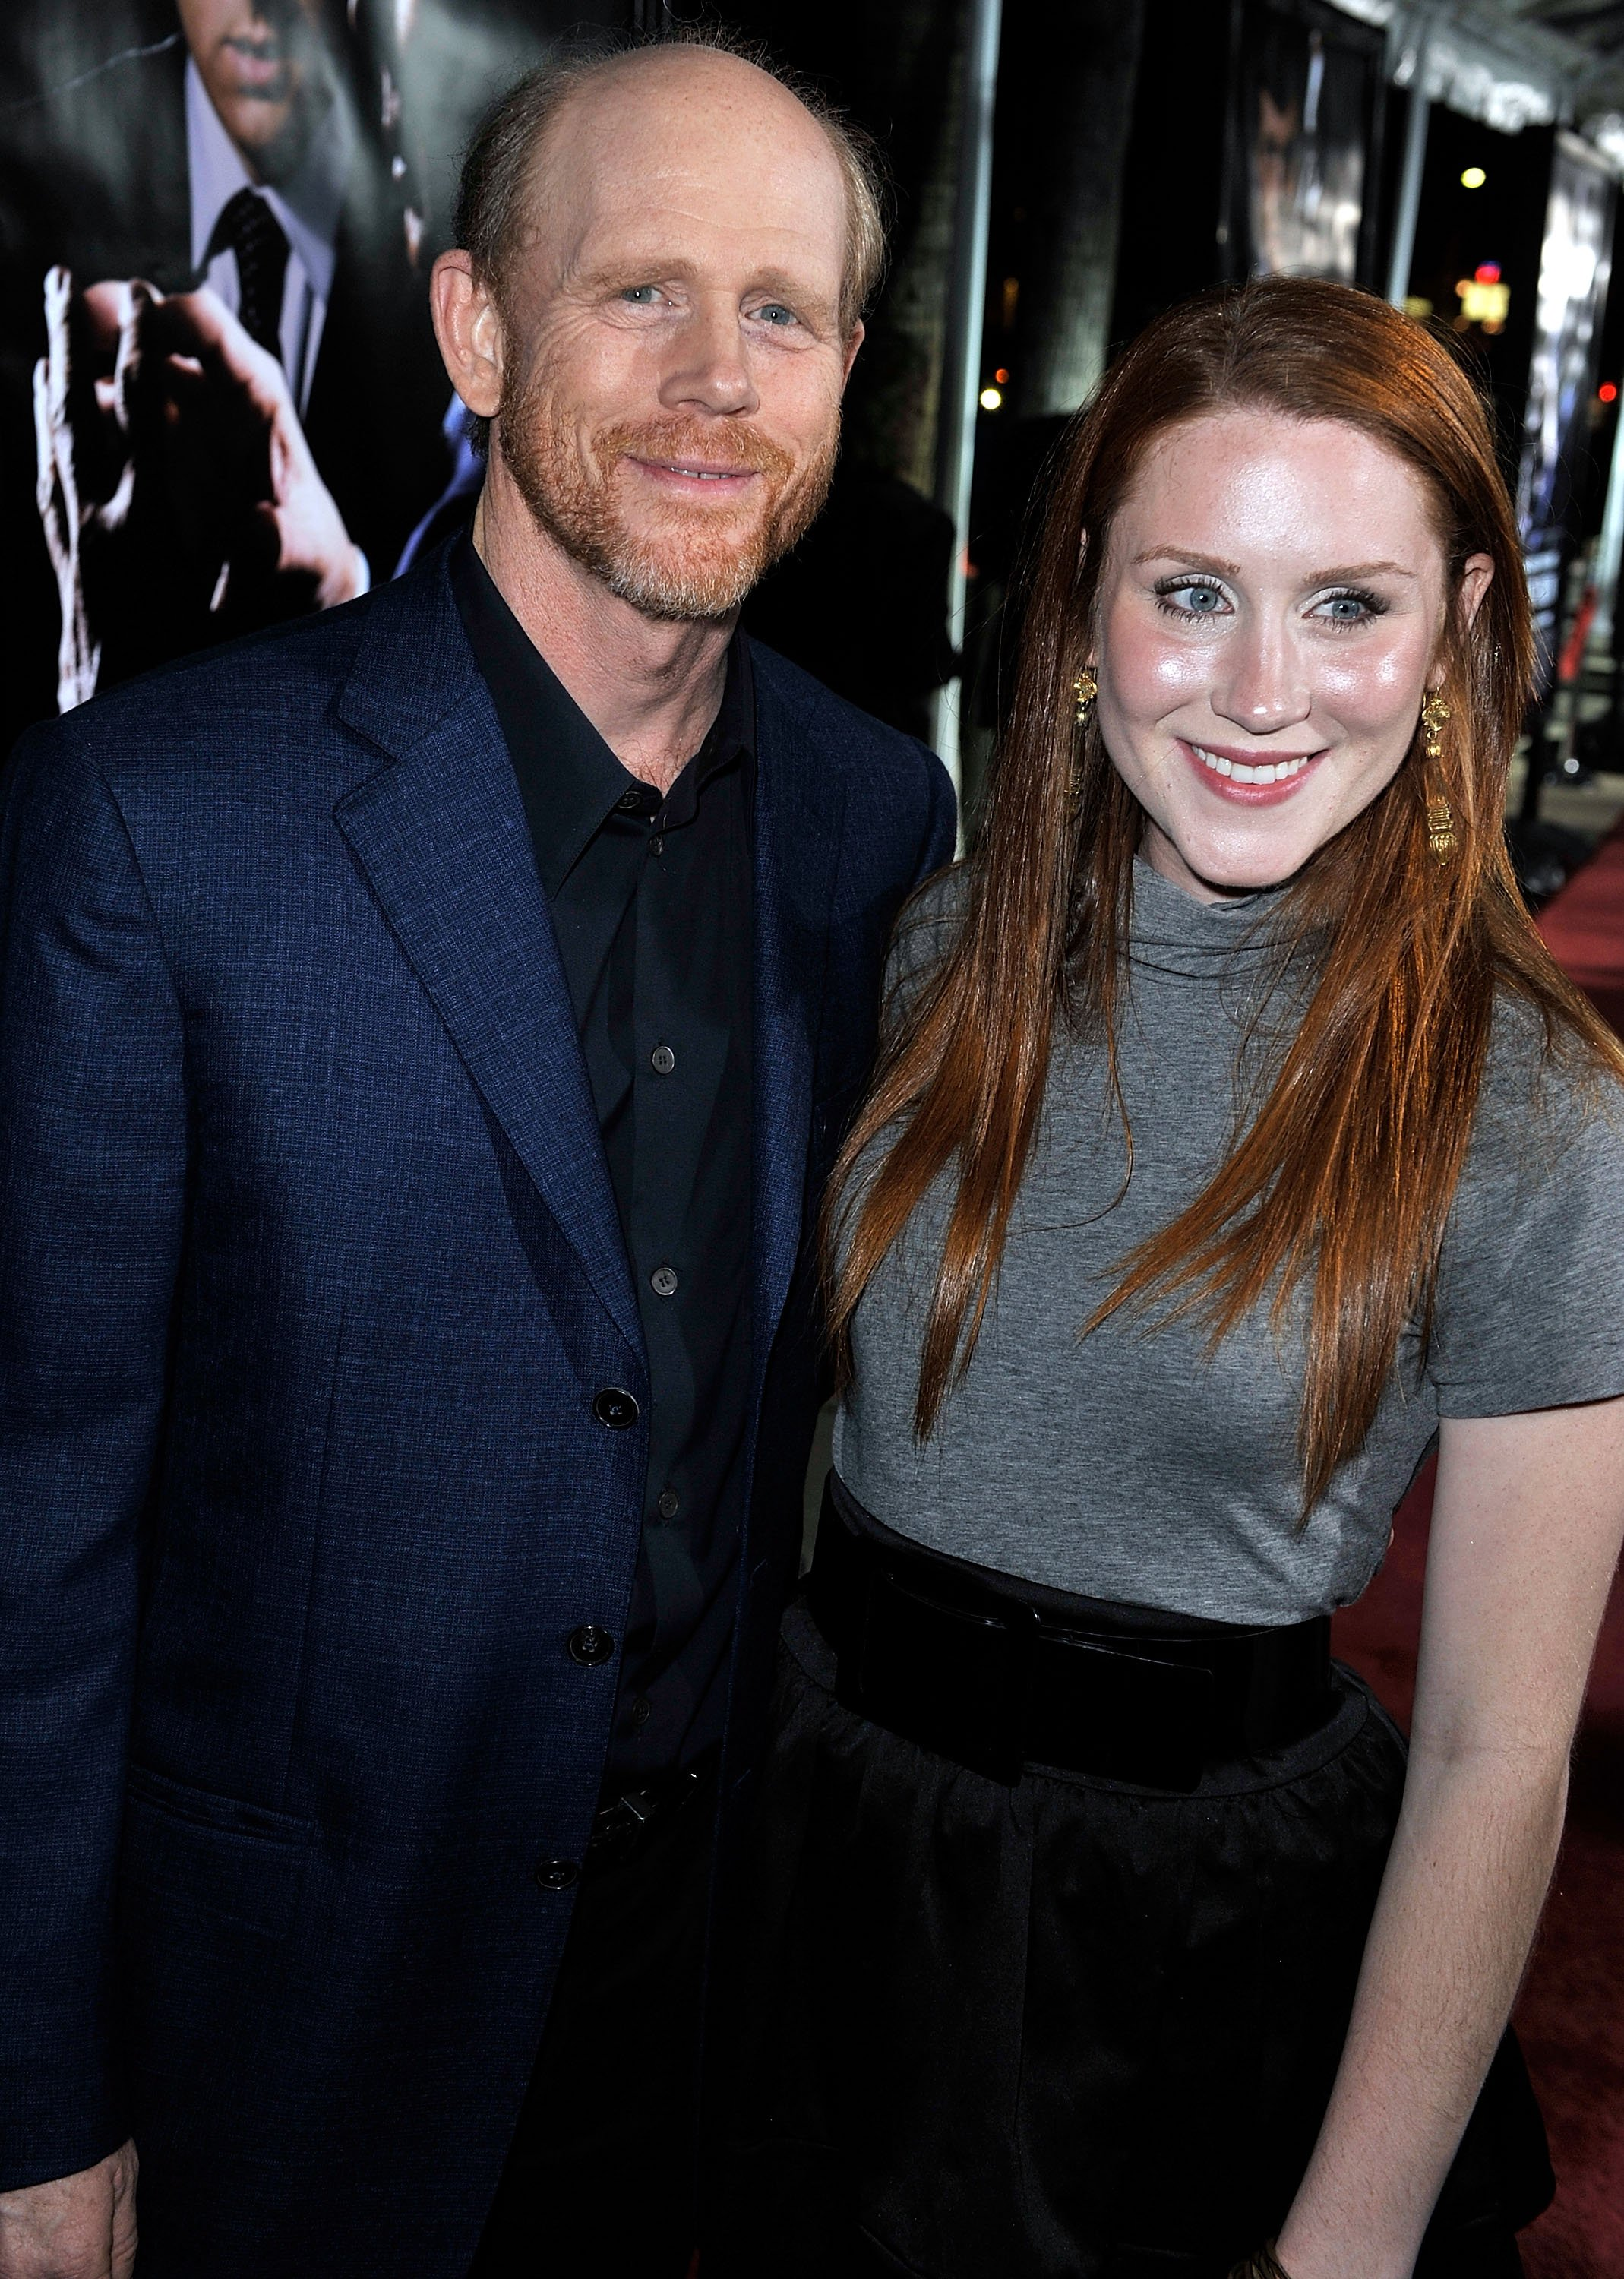 """Director Ron Howard (L) and his daughter Paige arrive at the premiere of Universal's """"Frost/Nixon"""" held at the Academy of Motion Picture Arts and Sciences' Samuel Goldwyn Theater on November 24, 2008 in Los Angeles, California. 